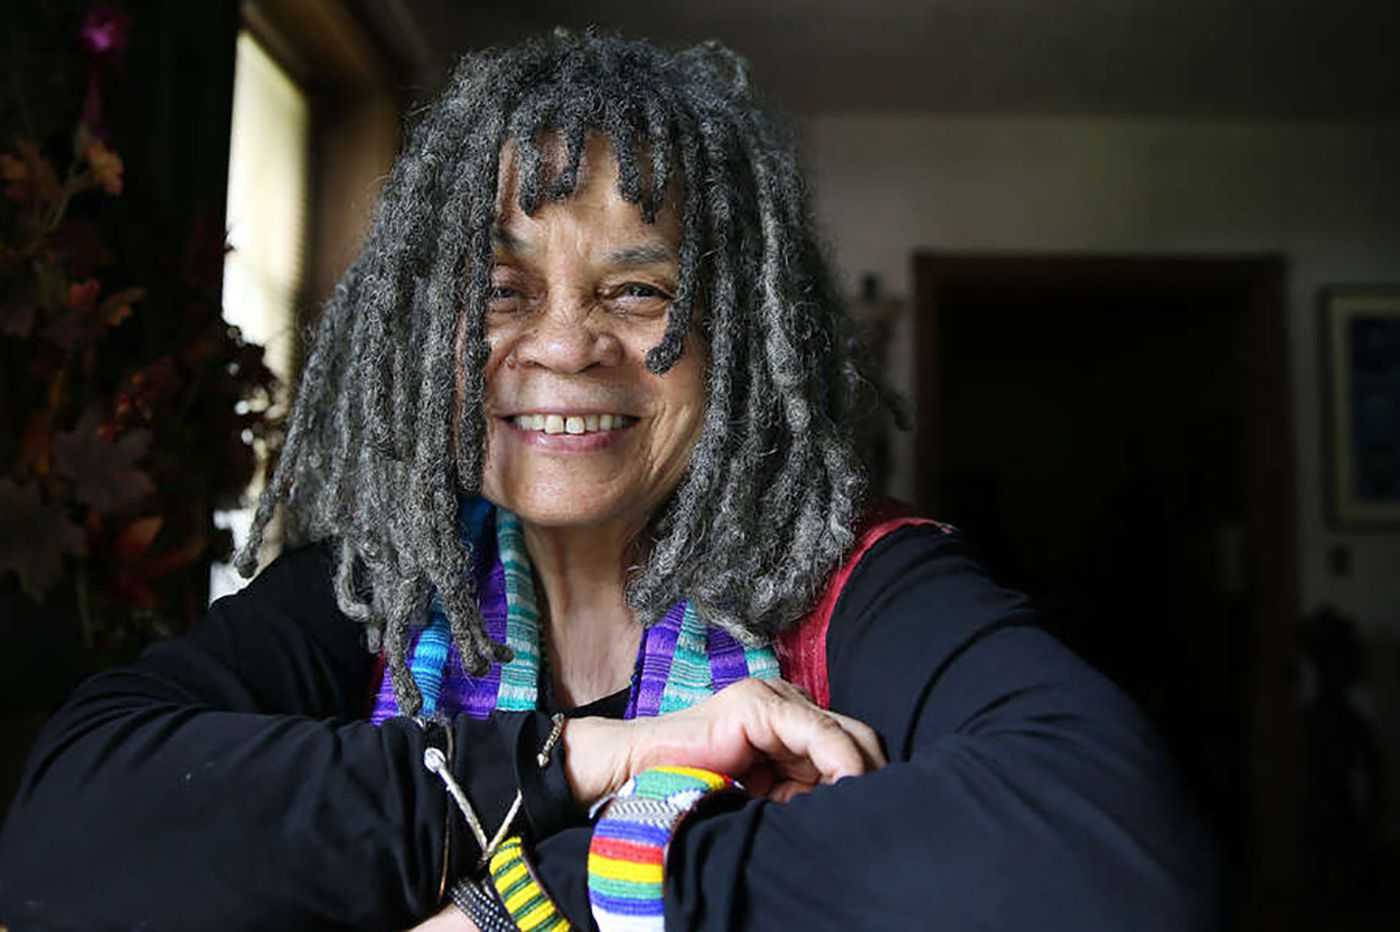 Philadelphia's Sonia Sanchez will receive a glitzy award at Lincoln Center